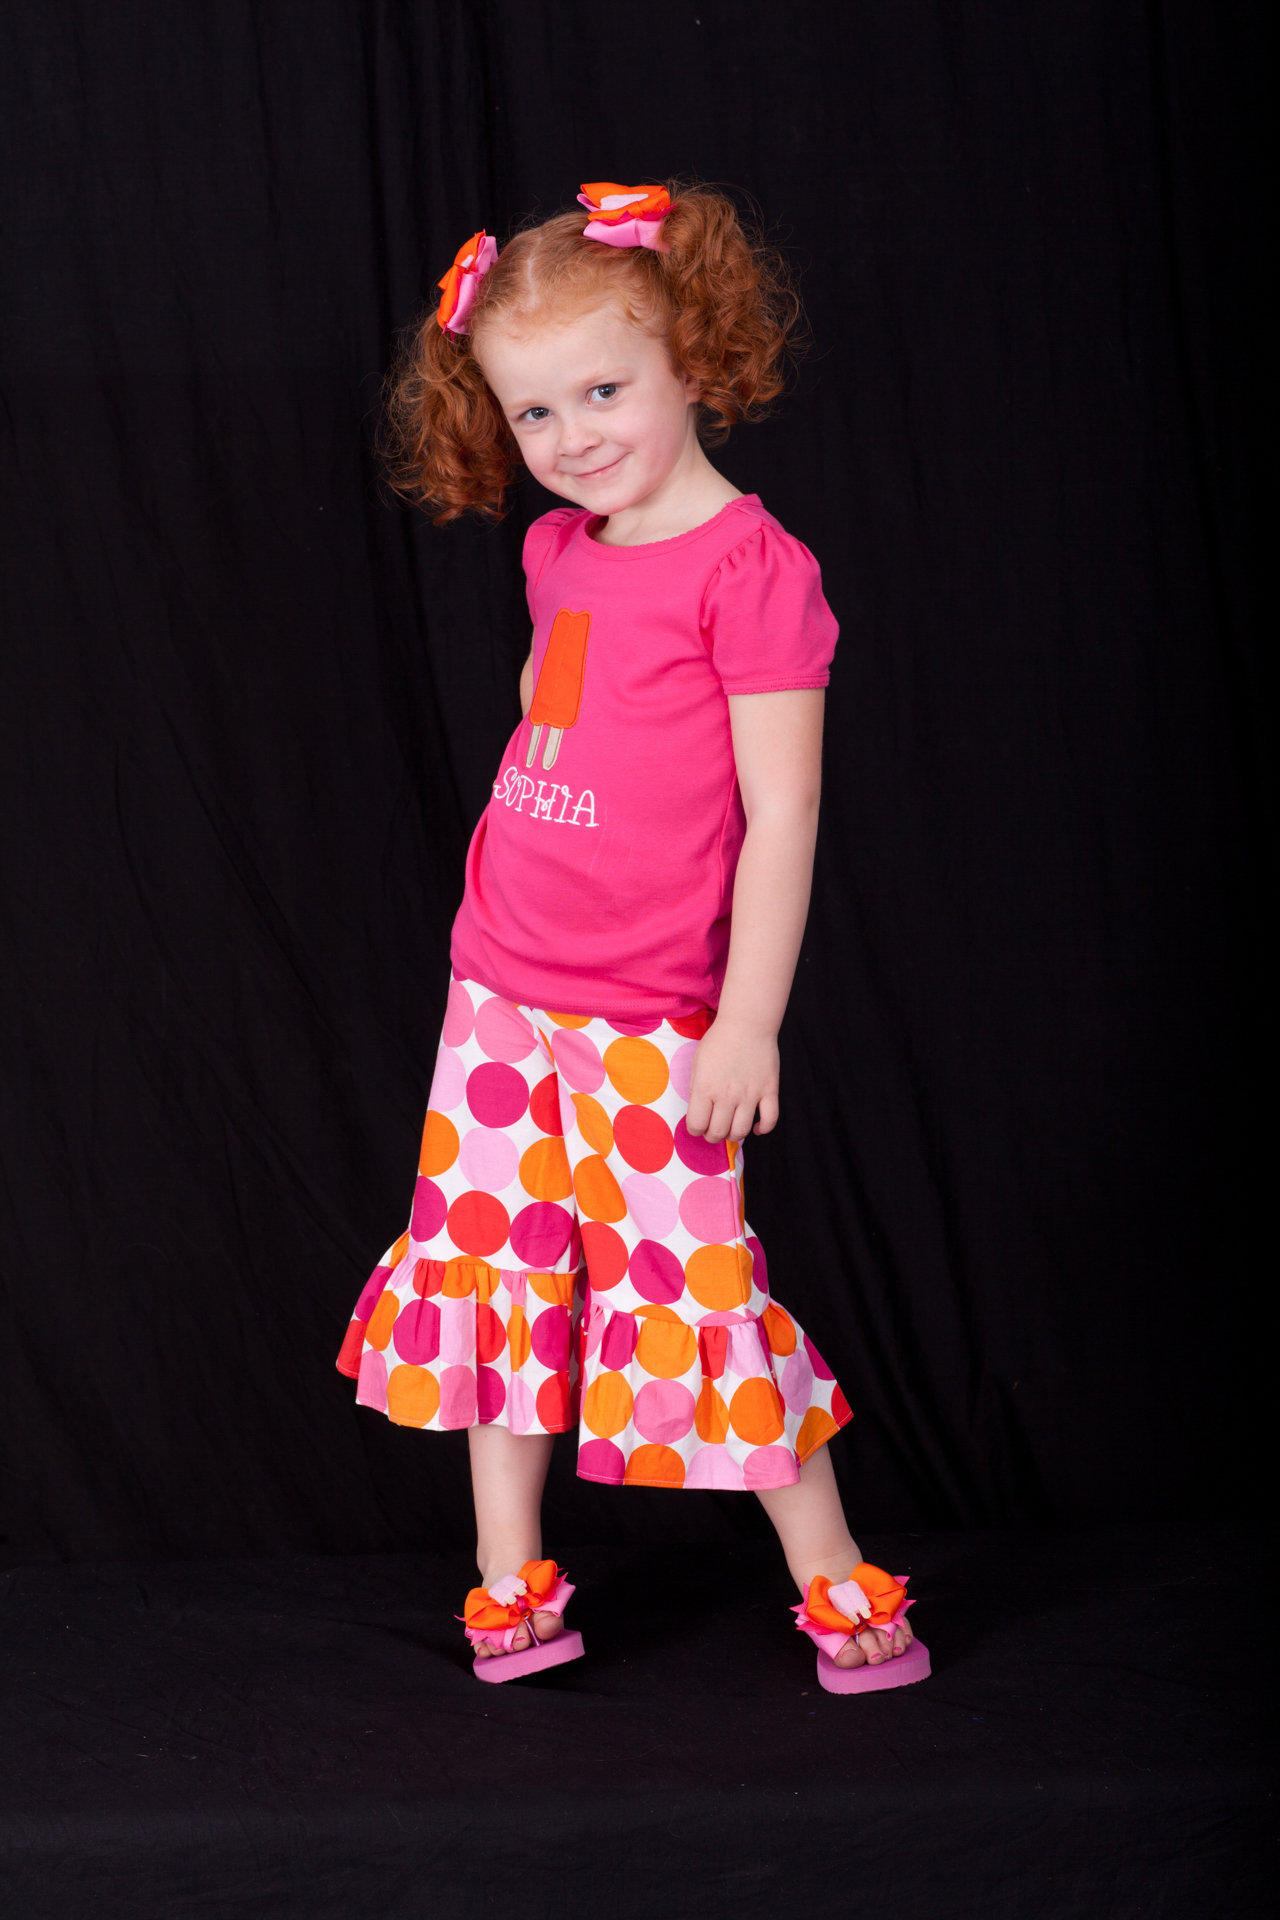 Childrens shoot-1054.jpg